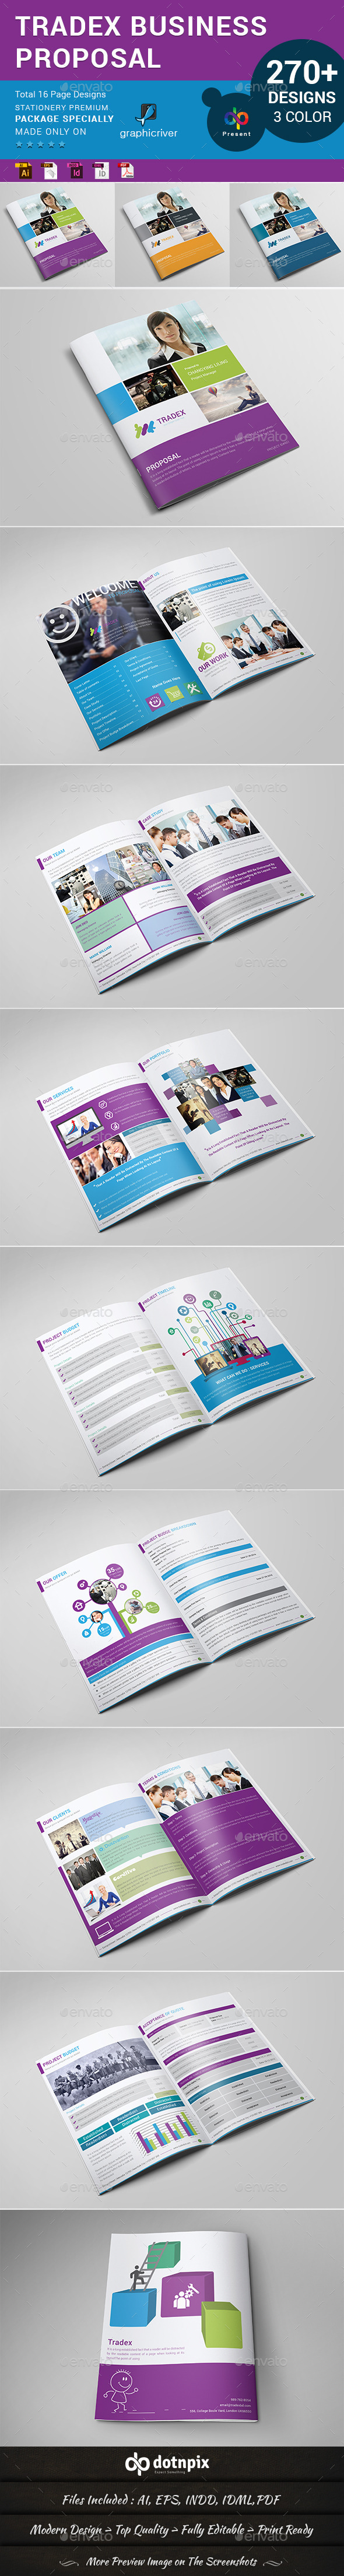 GraphicRiver Tradex Business Propsal 11026787